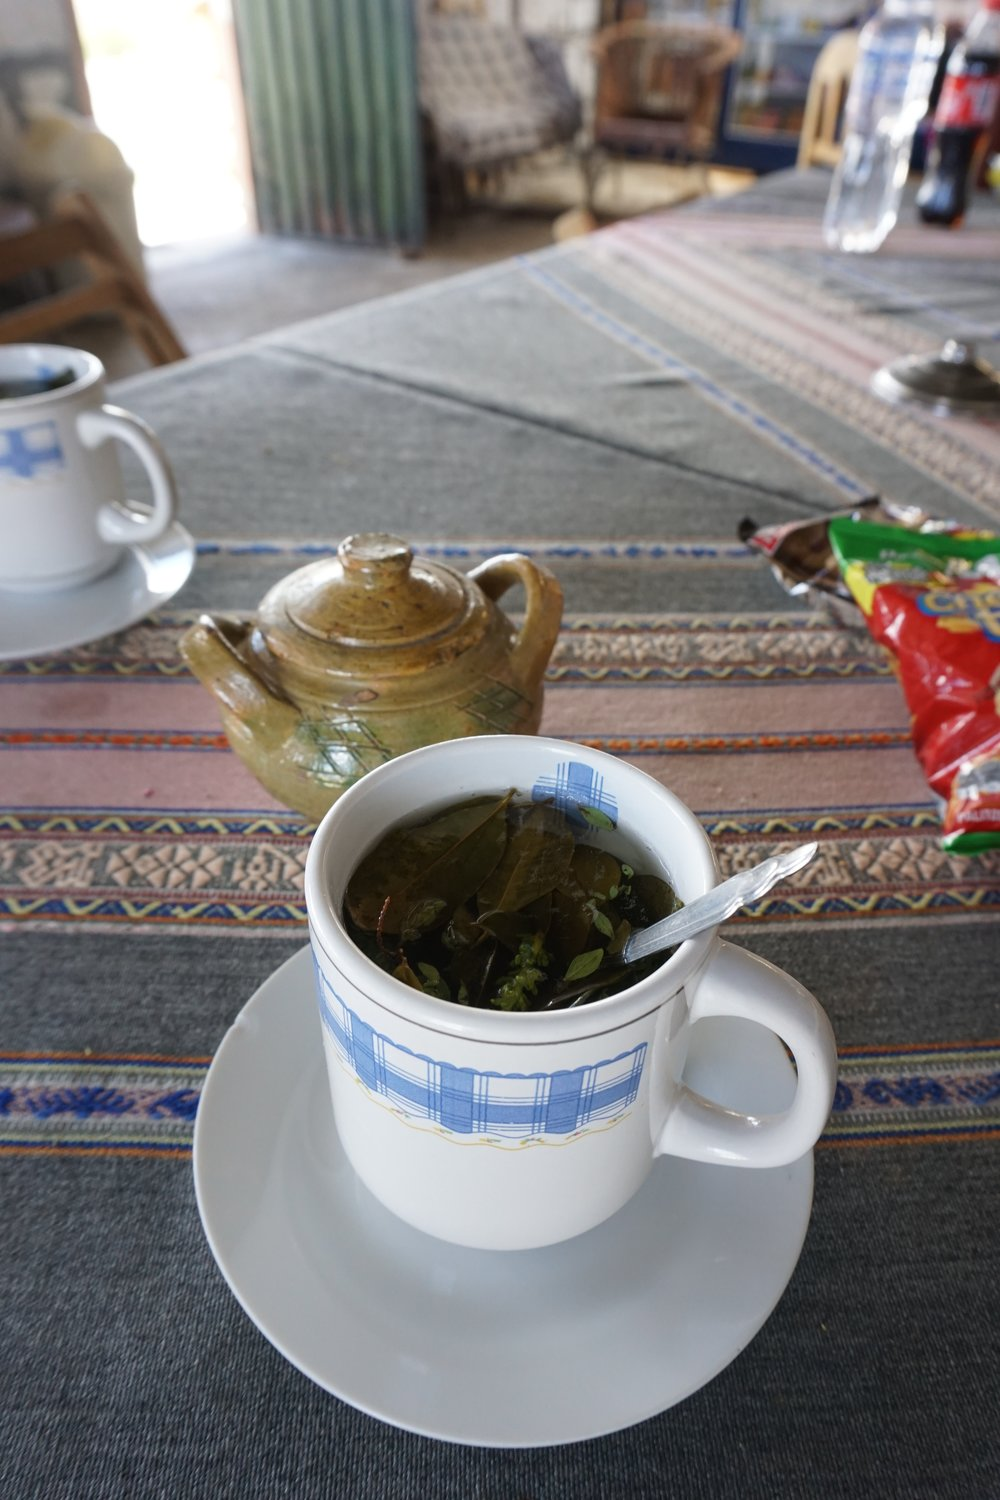 An infusion of coca leaves and other local herbs served at 15,000 feet to help with altitude sickness.